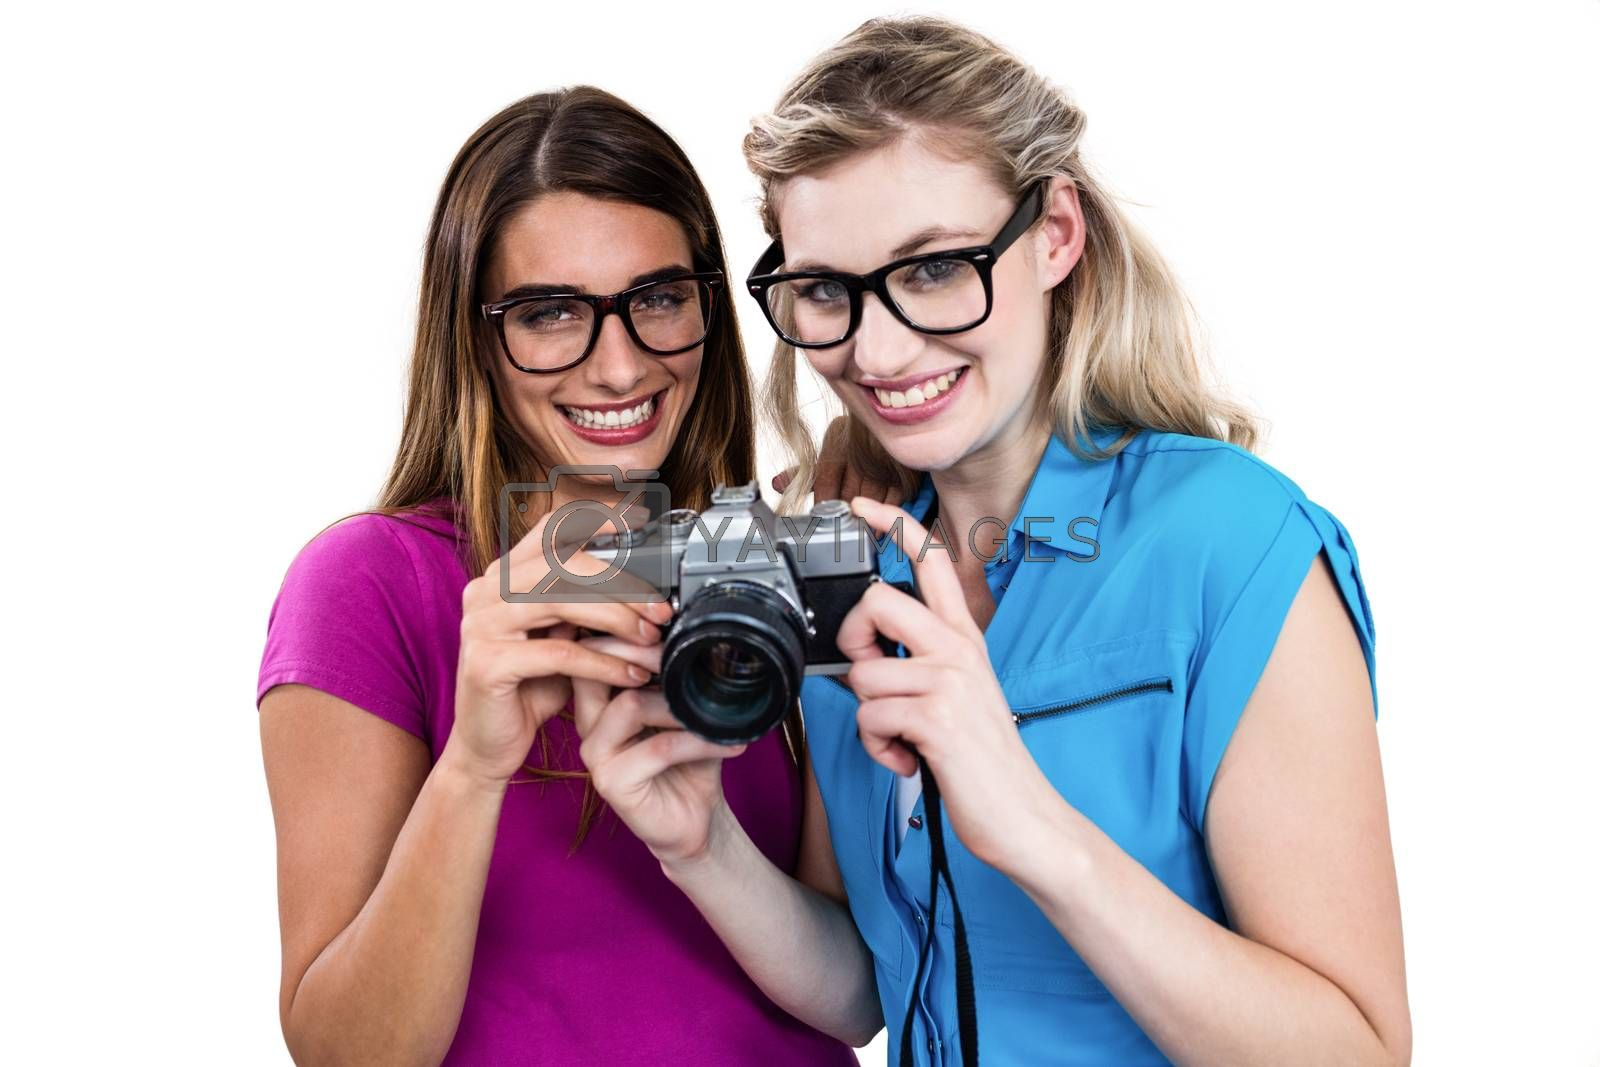 Portrait of smiling friends holding digital camera on white background